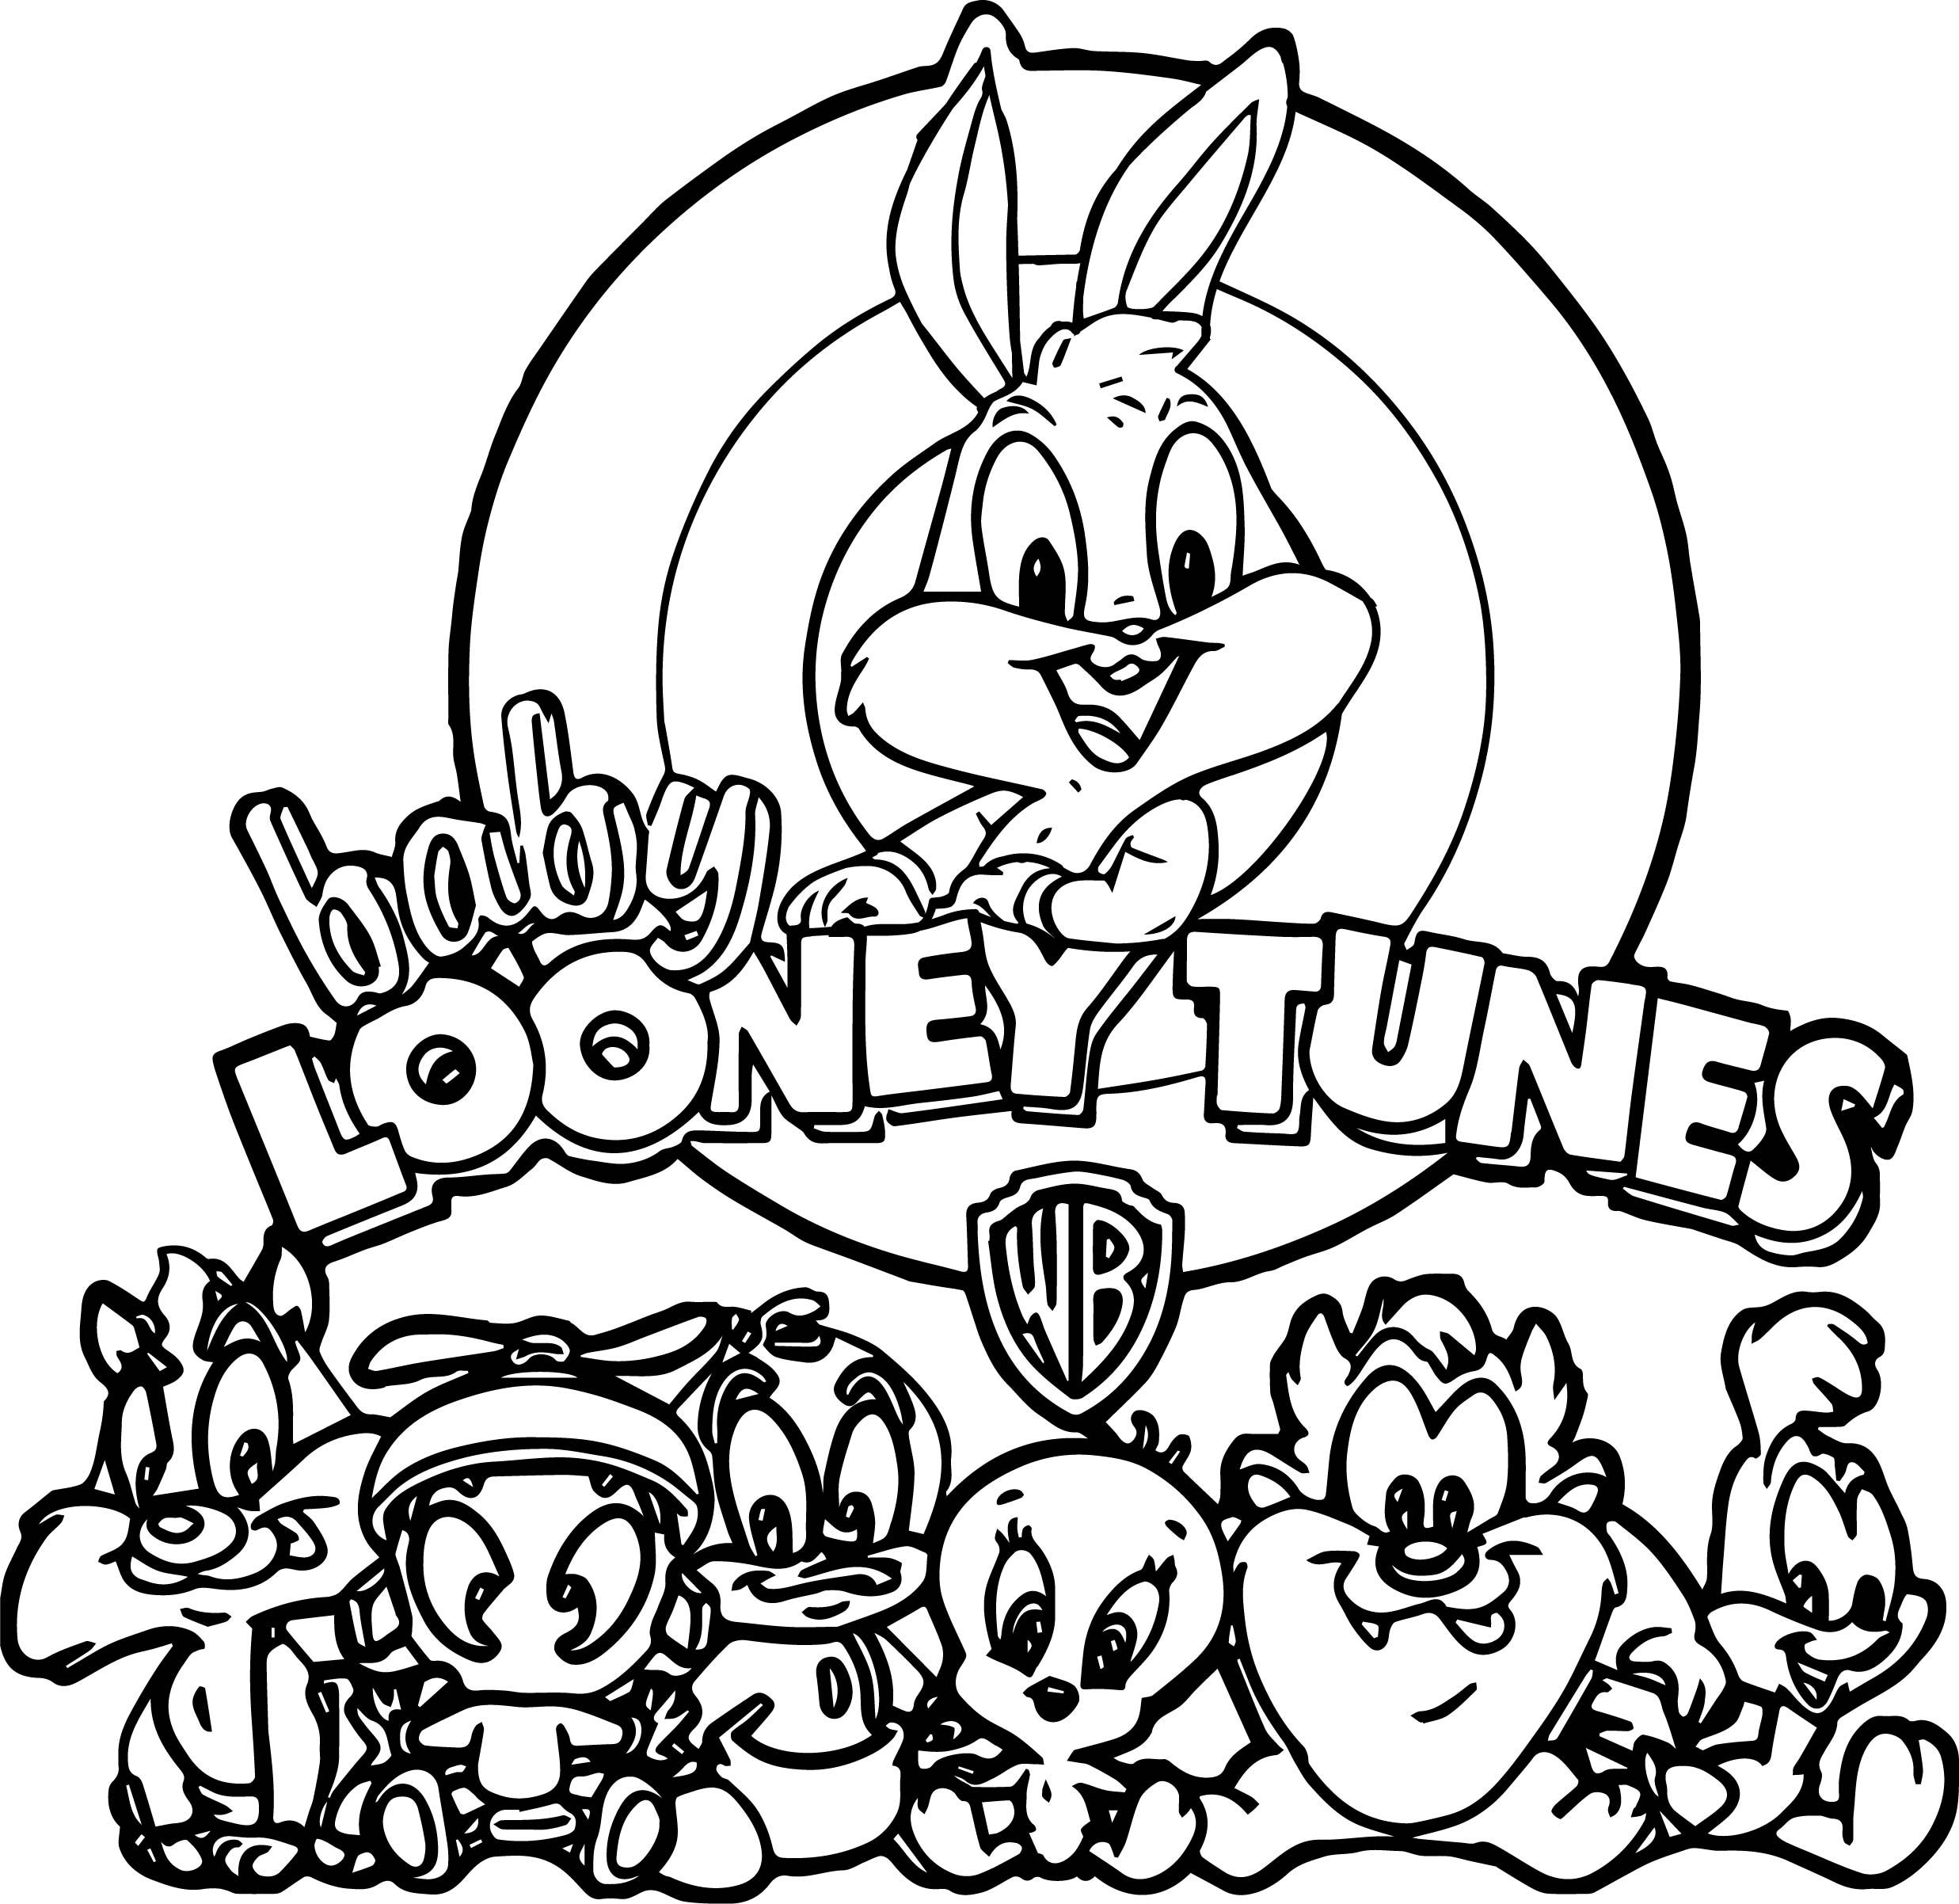 Baby Looney Tunes coloring pages on Coloring-Book.info | 2404x2474